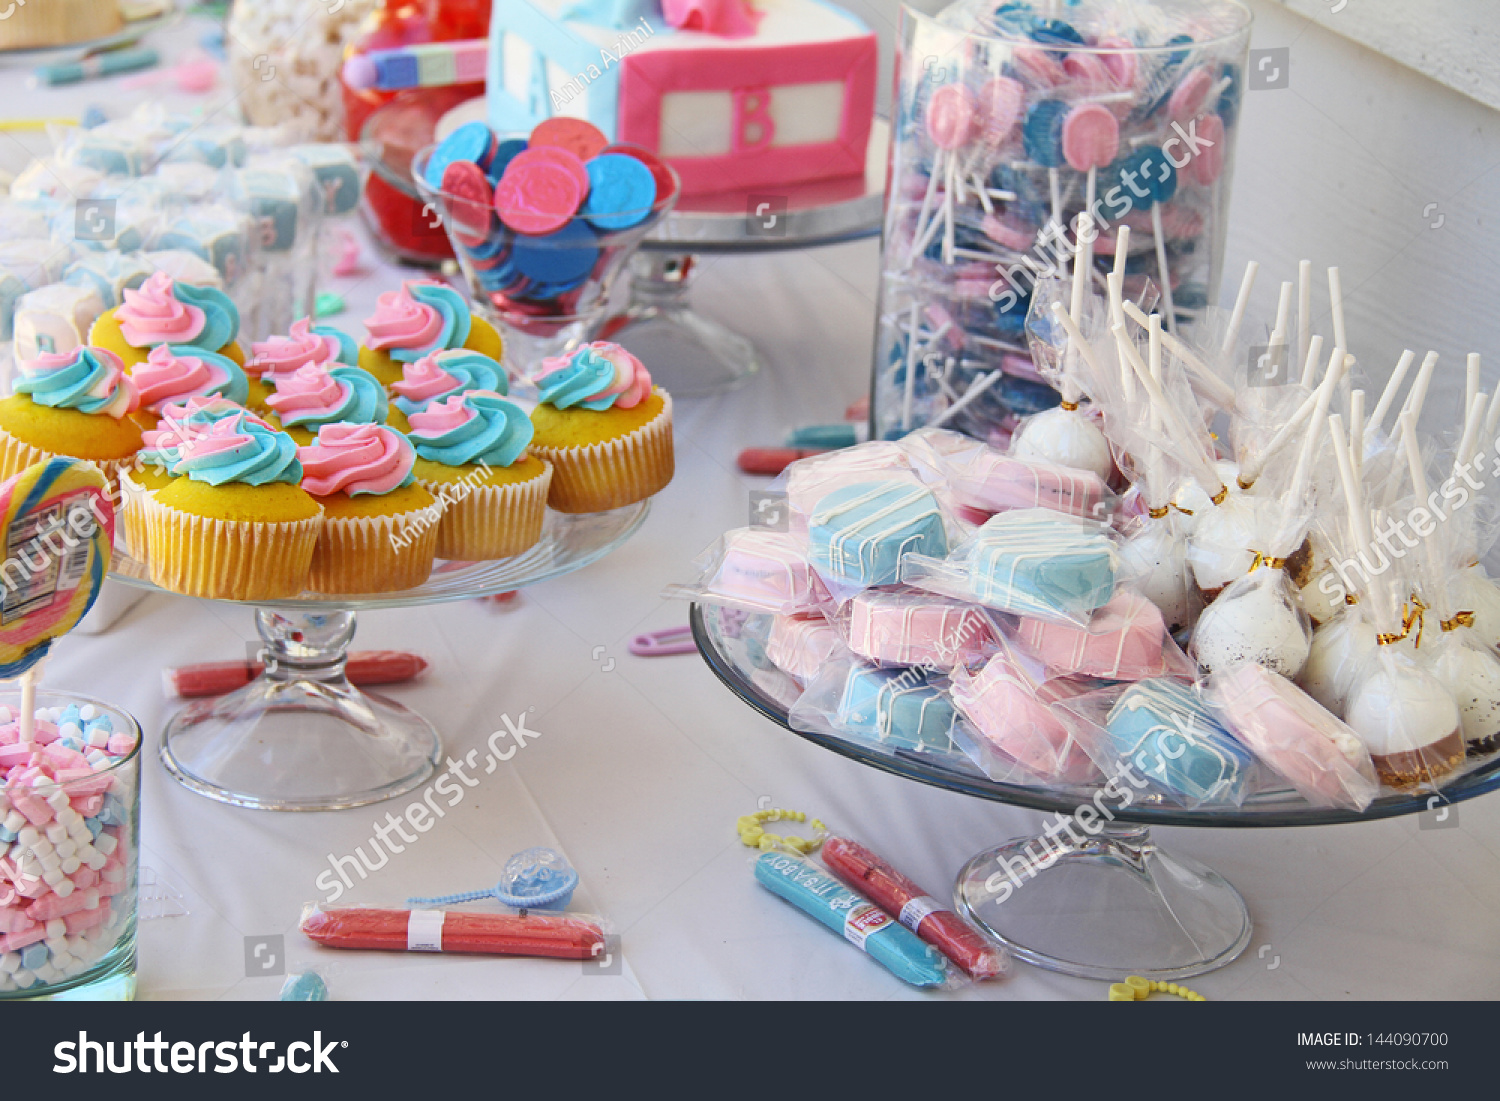 Baby Shower And Sweets On The Table Ez Canvas